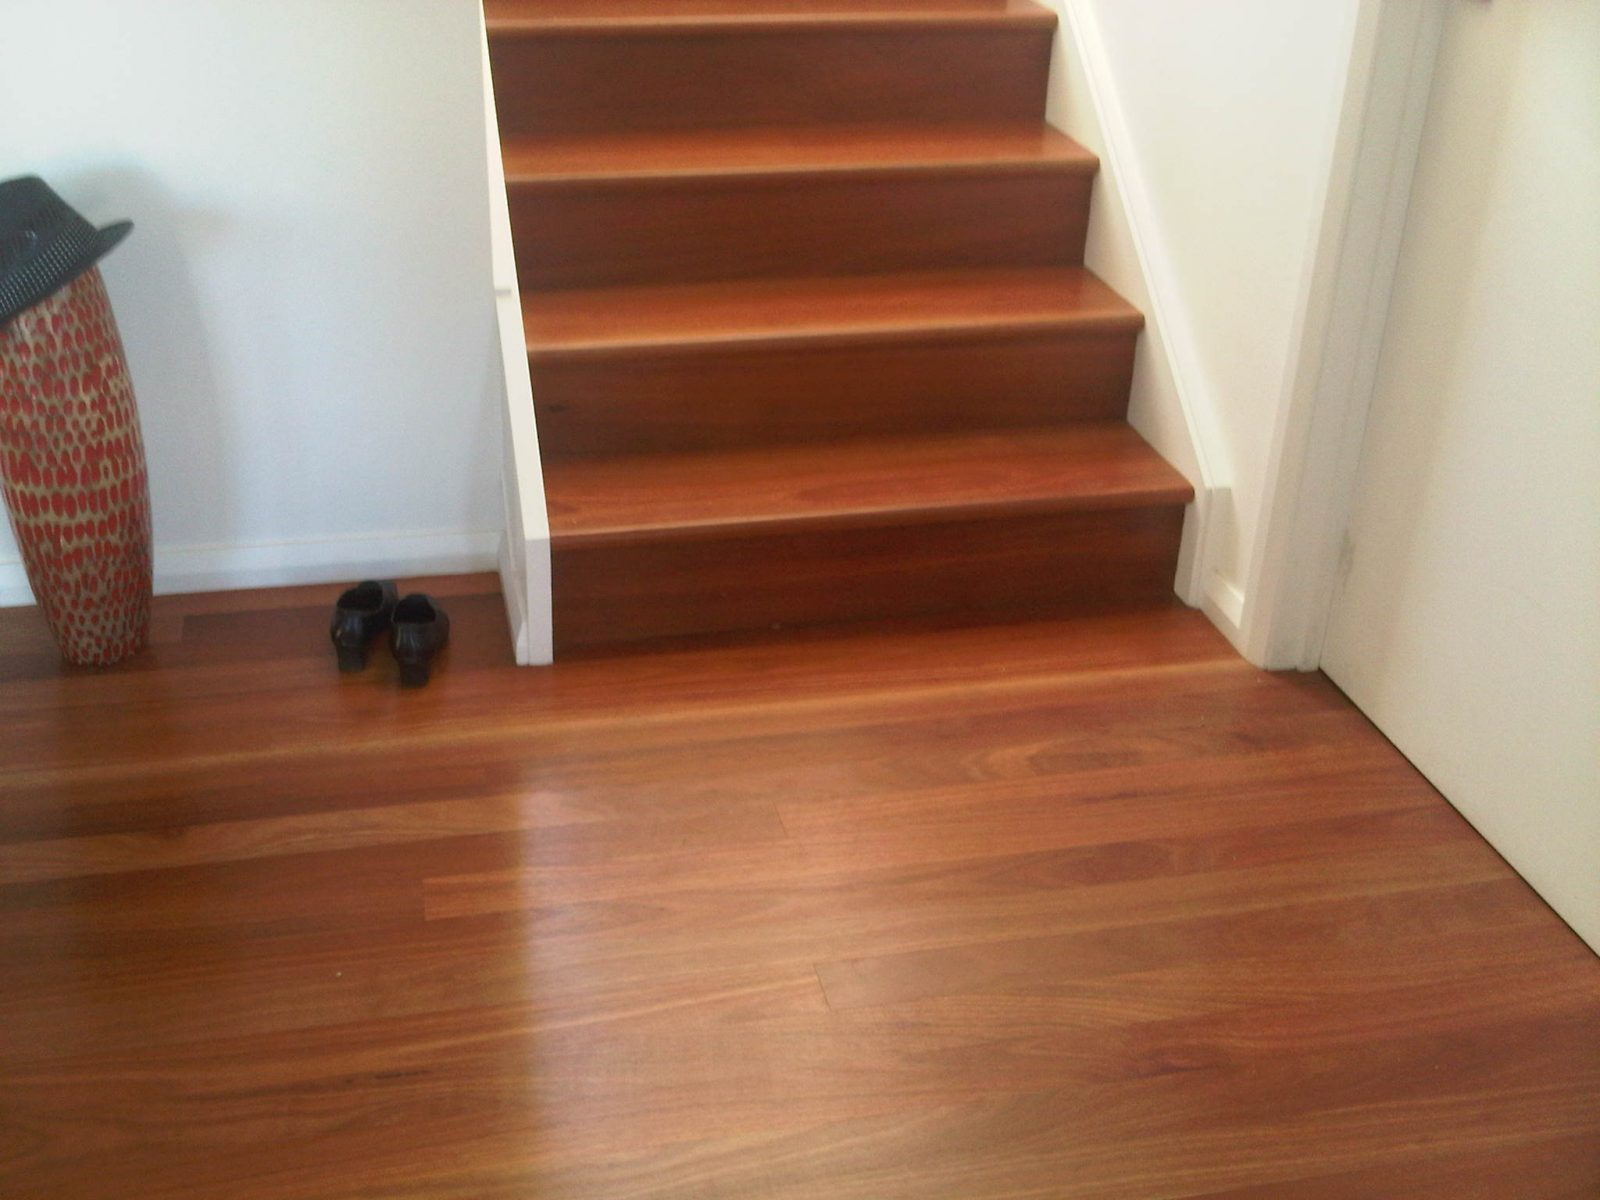 Solid hardwood Red Gum treads and risers wrapped to concrete formed staircase with matching solid timber flooring over concrete slab supplied and installed by Timber Floors Pty Ltd